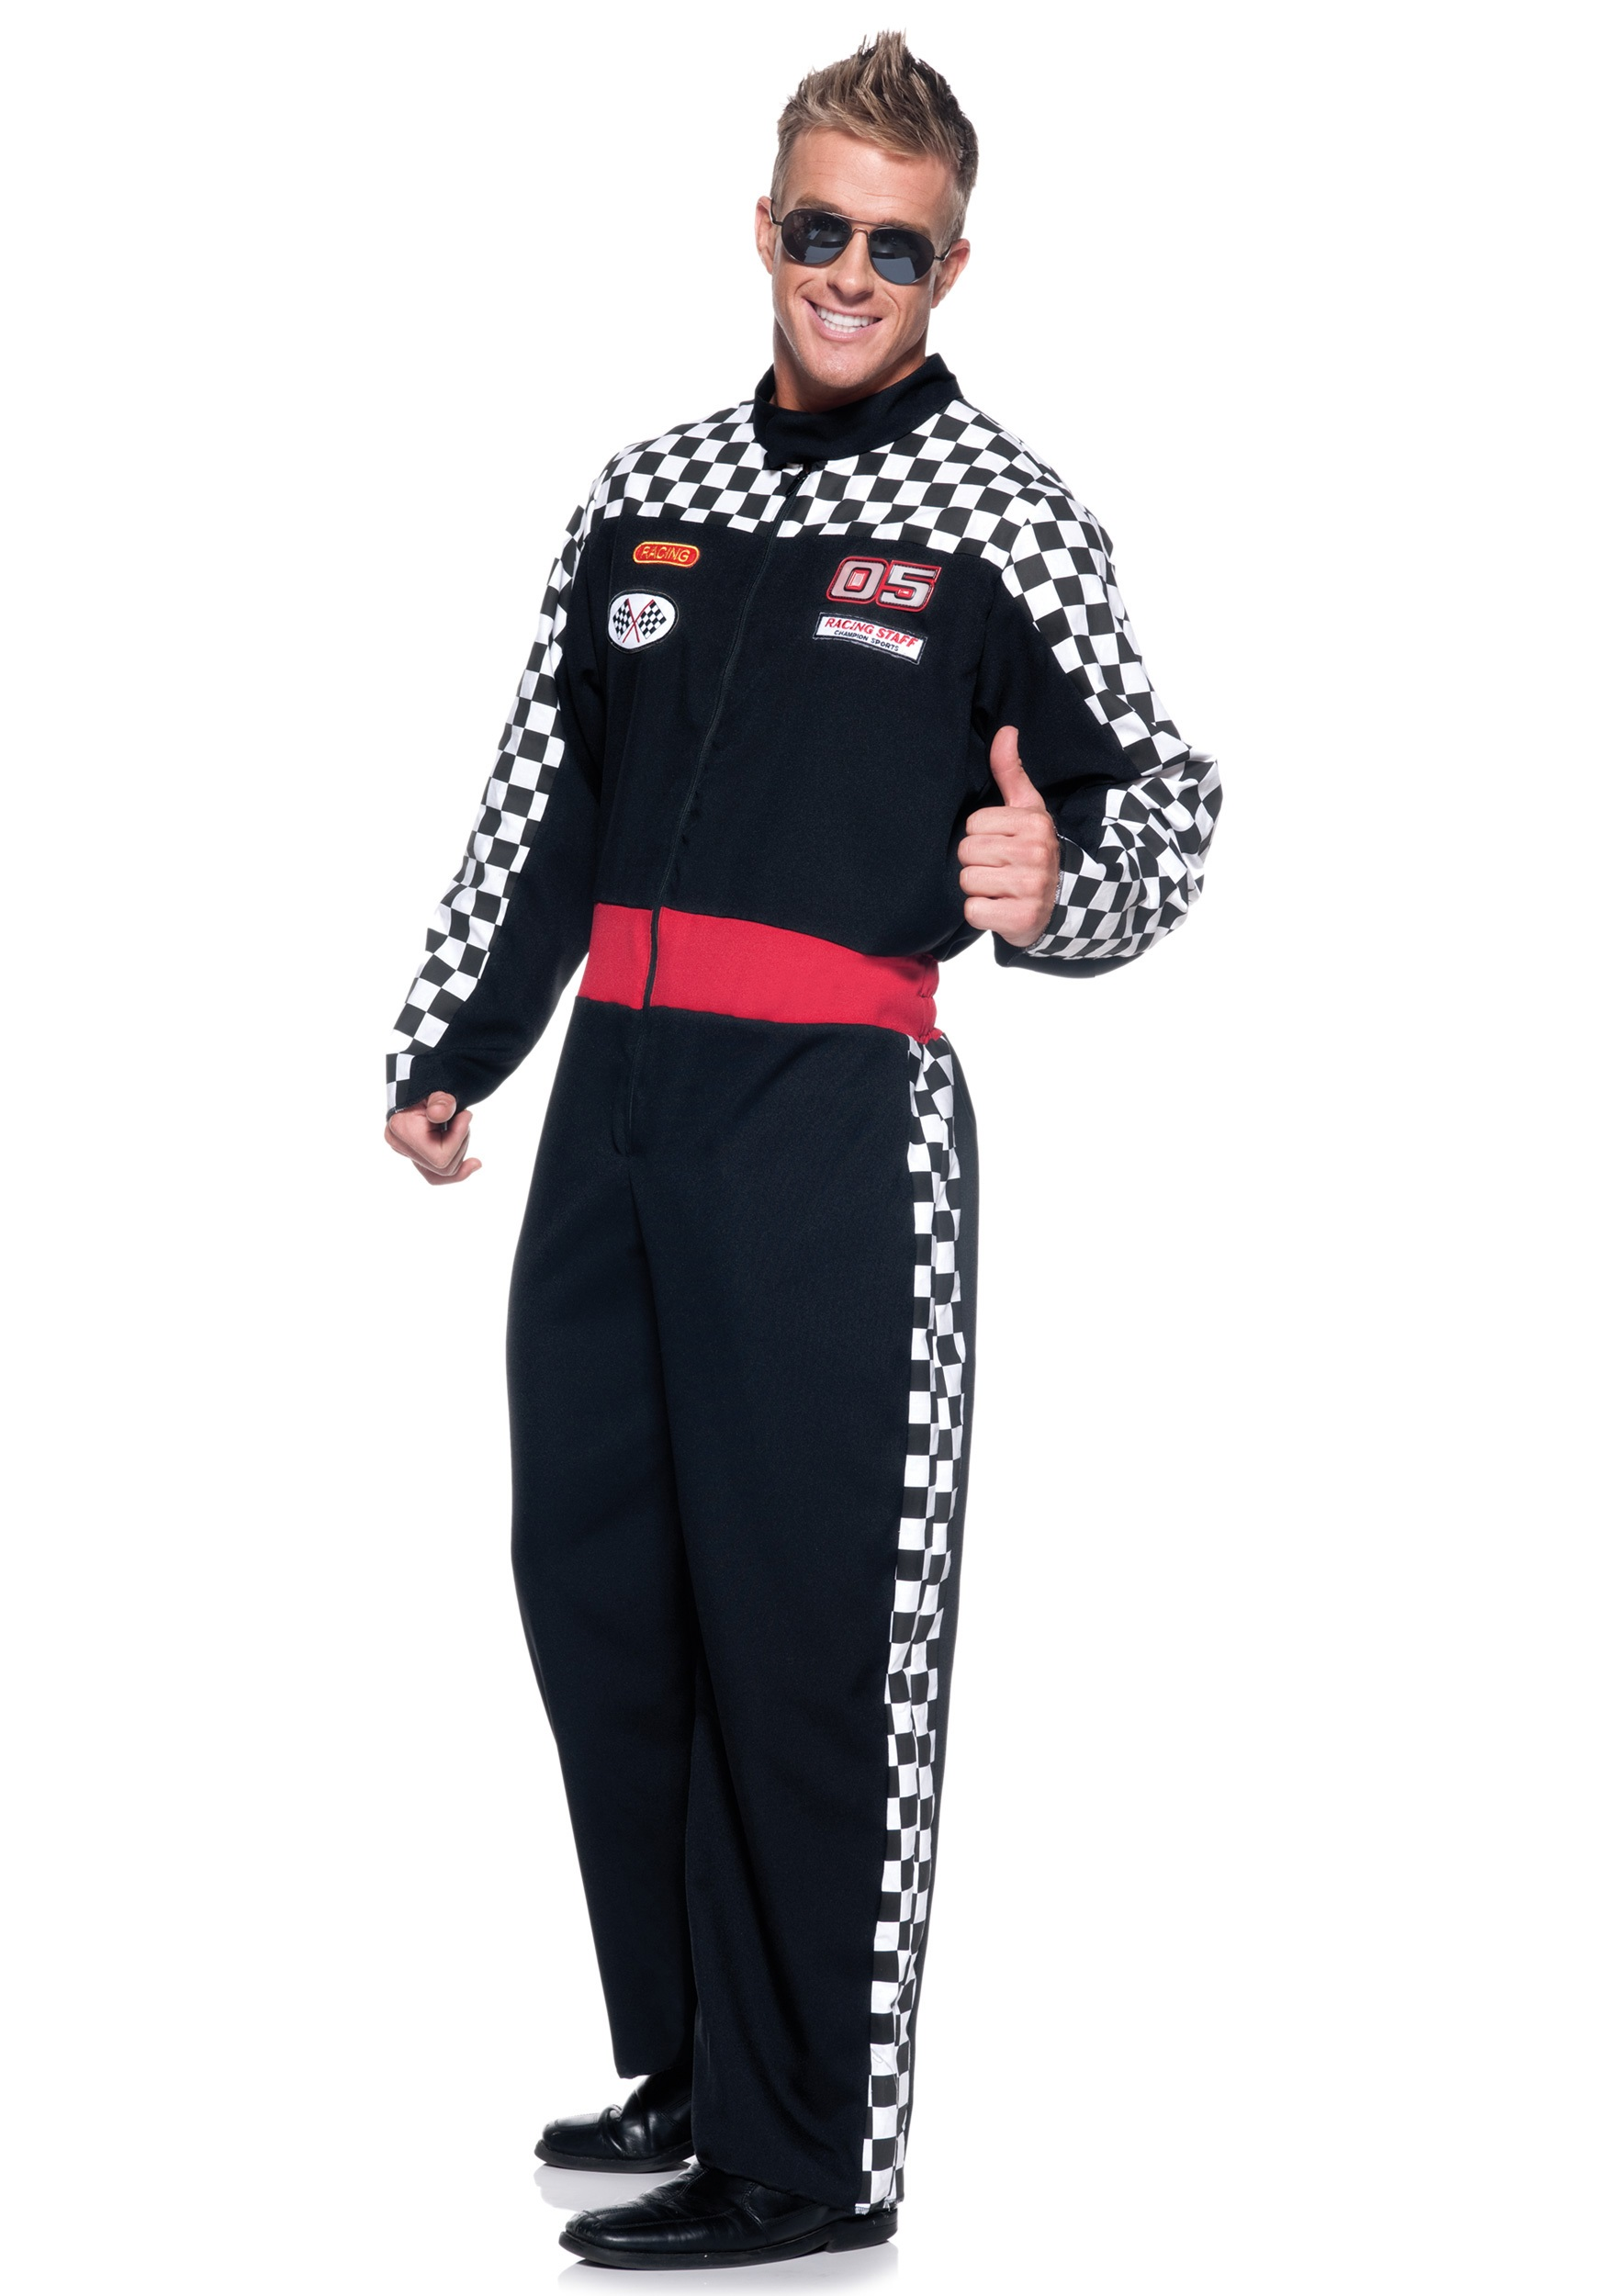 Race Car Costumes